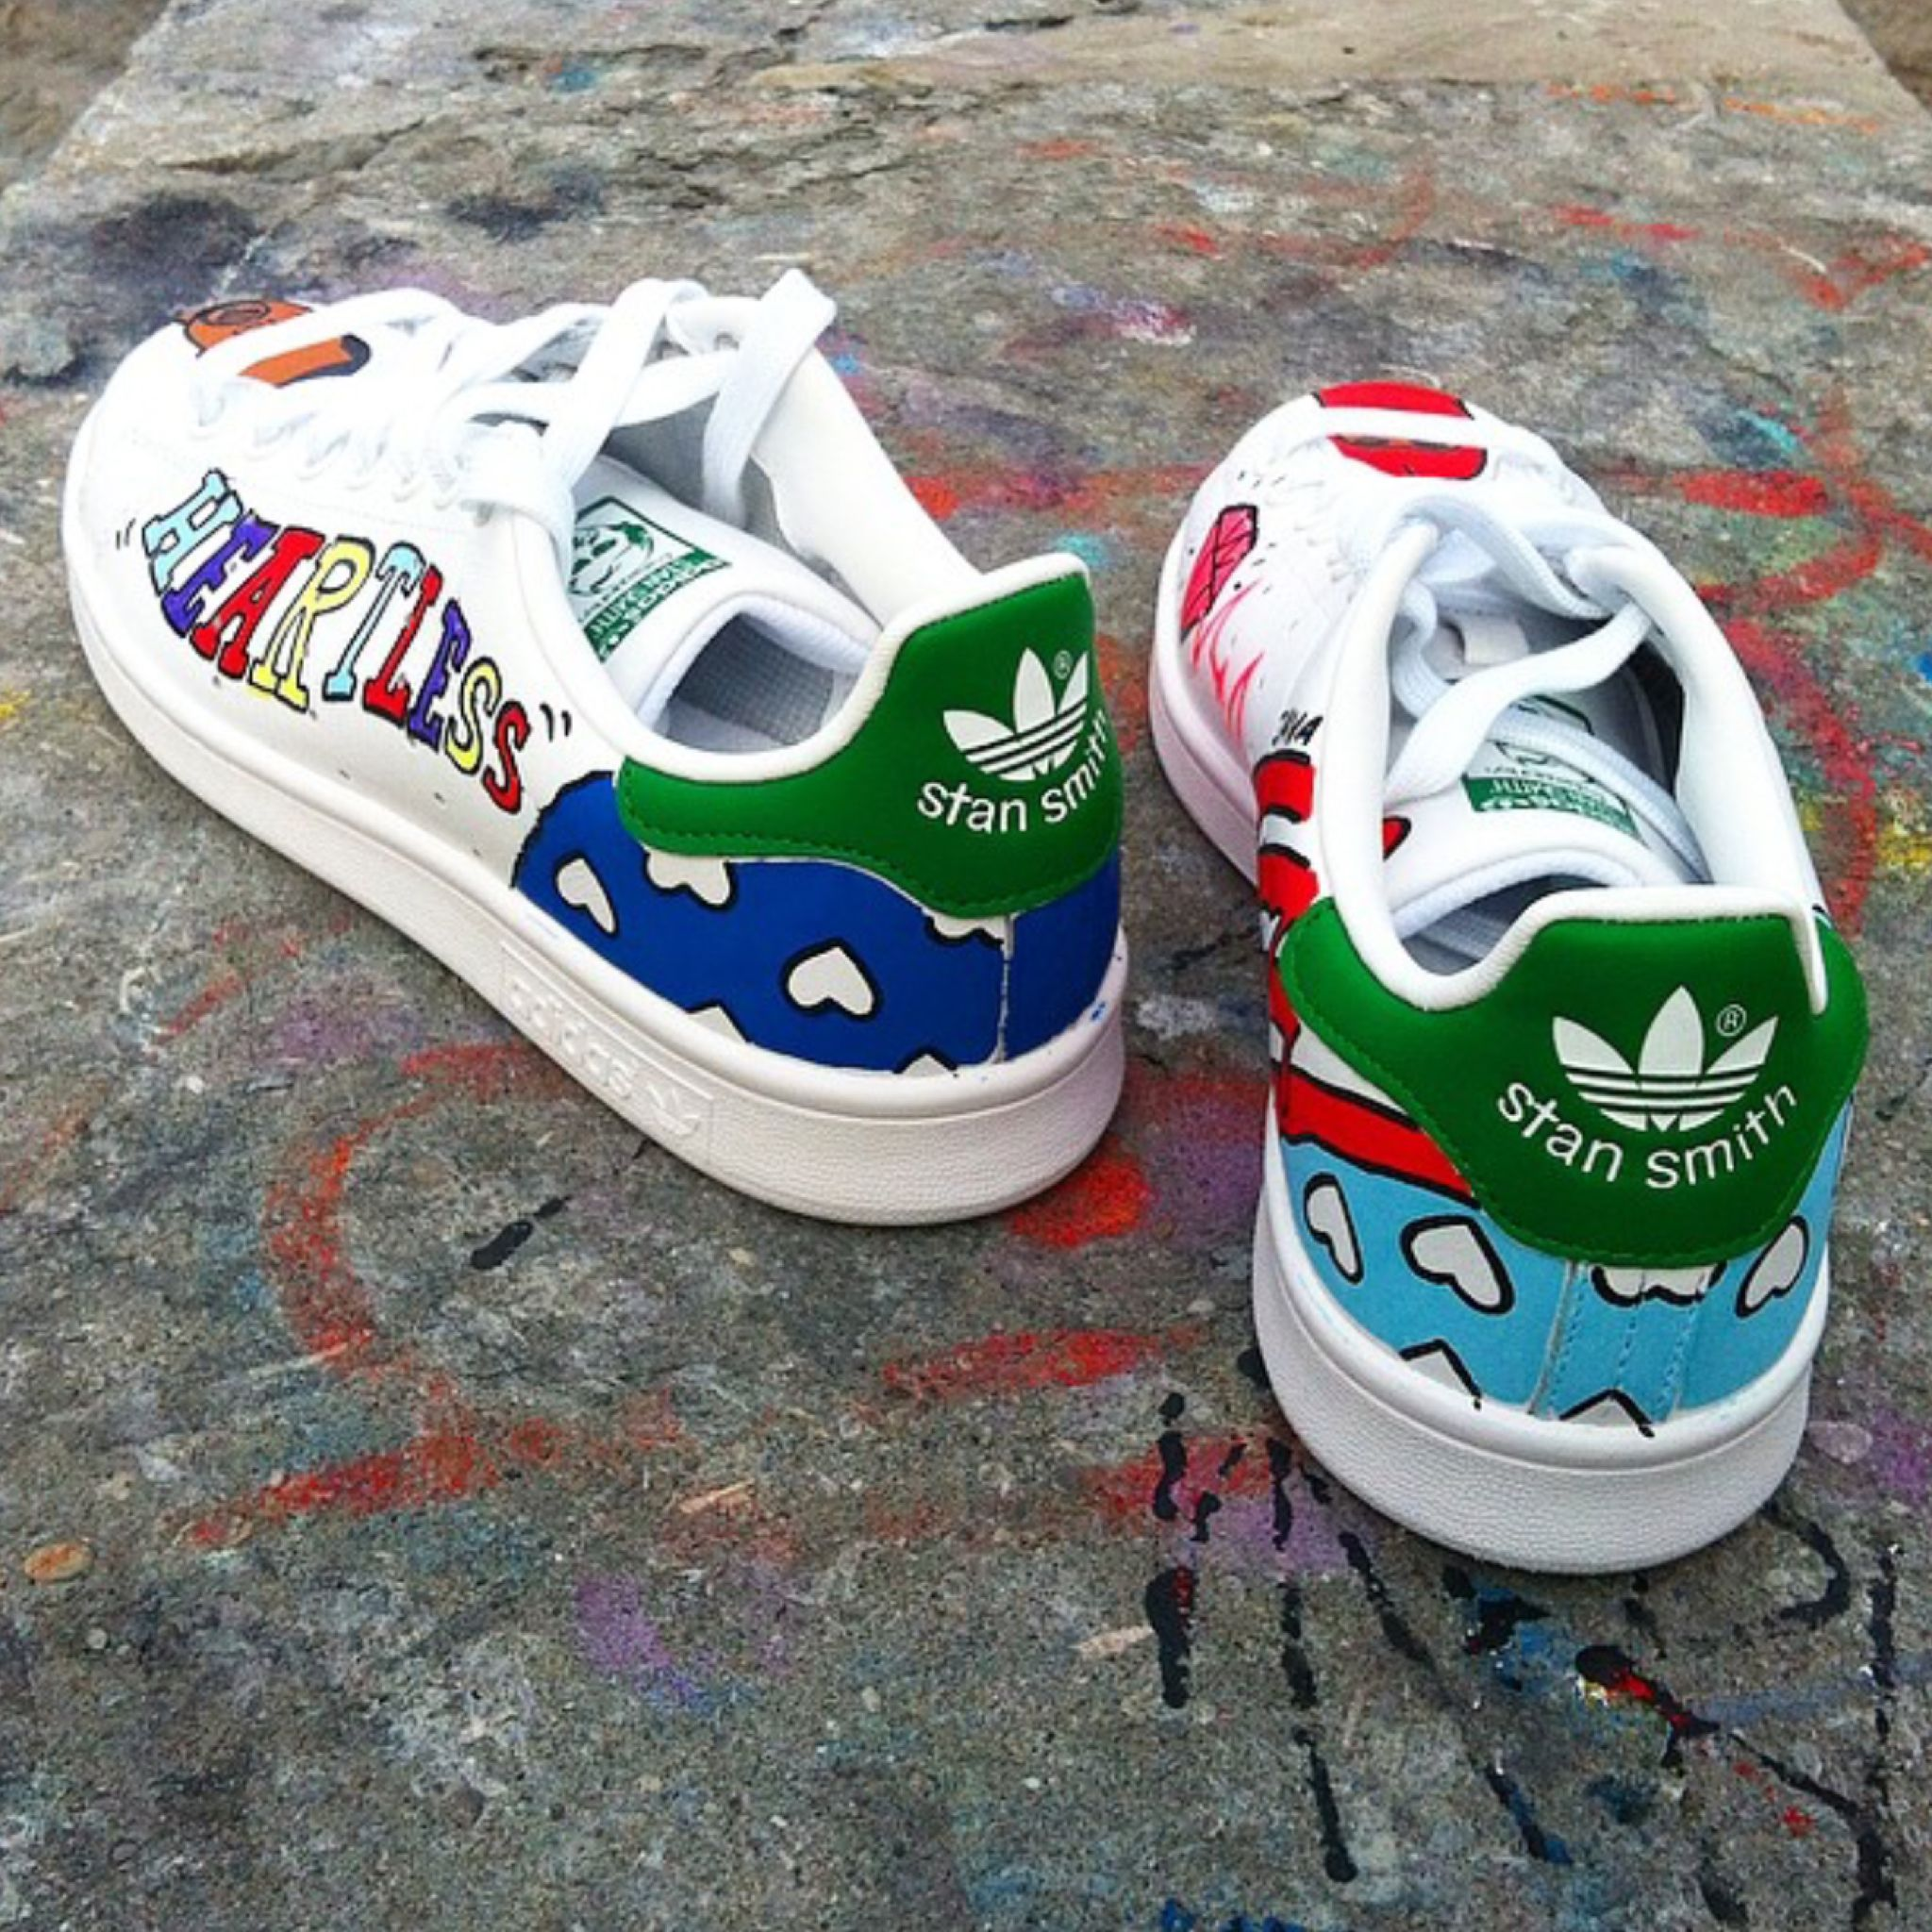 Stan CustomsPosca 2019 Smith Adidas Originals En 29EWHID